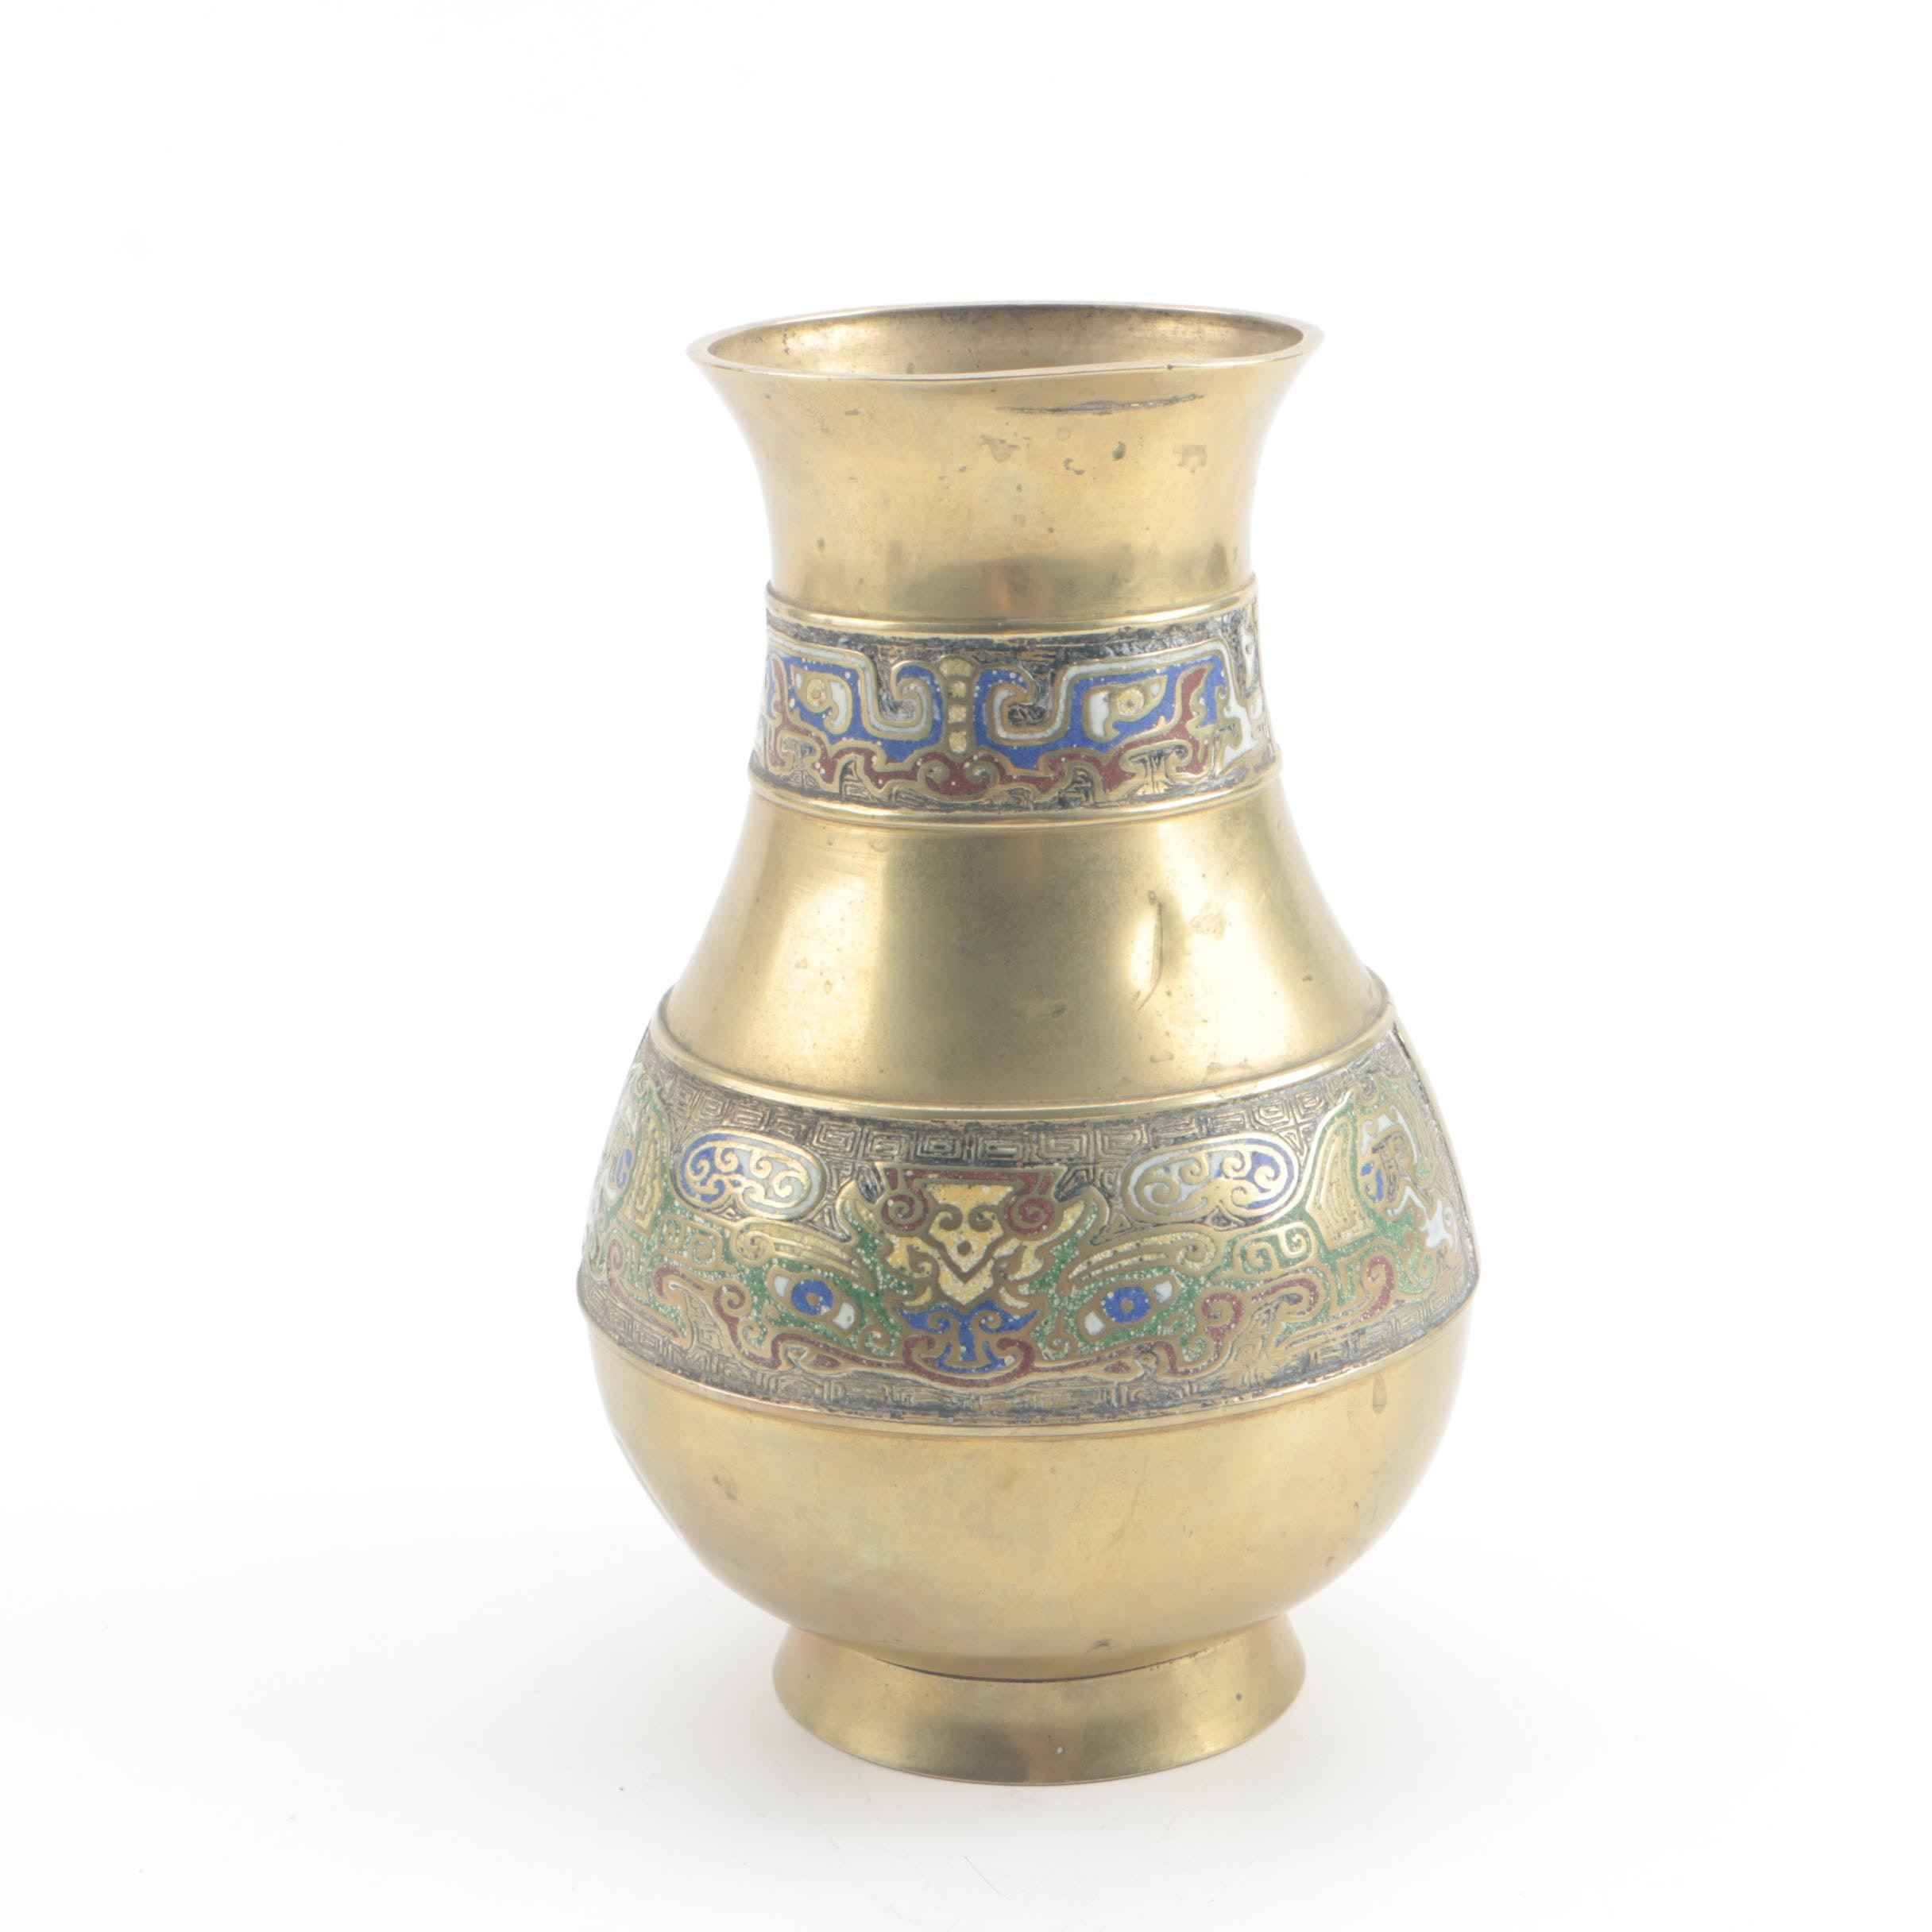 Vintage Chinese Cloisonne Brass Vase with Archaistic Taotie Motif